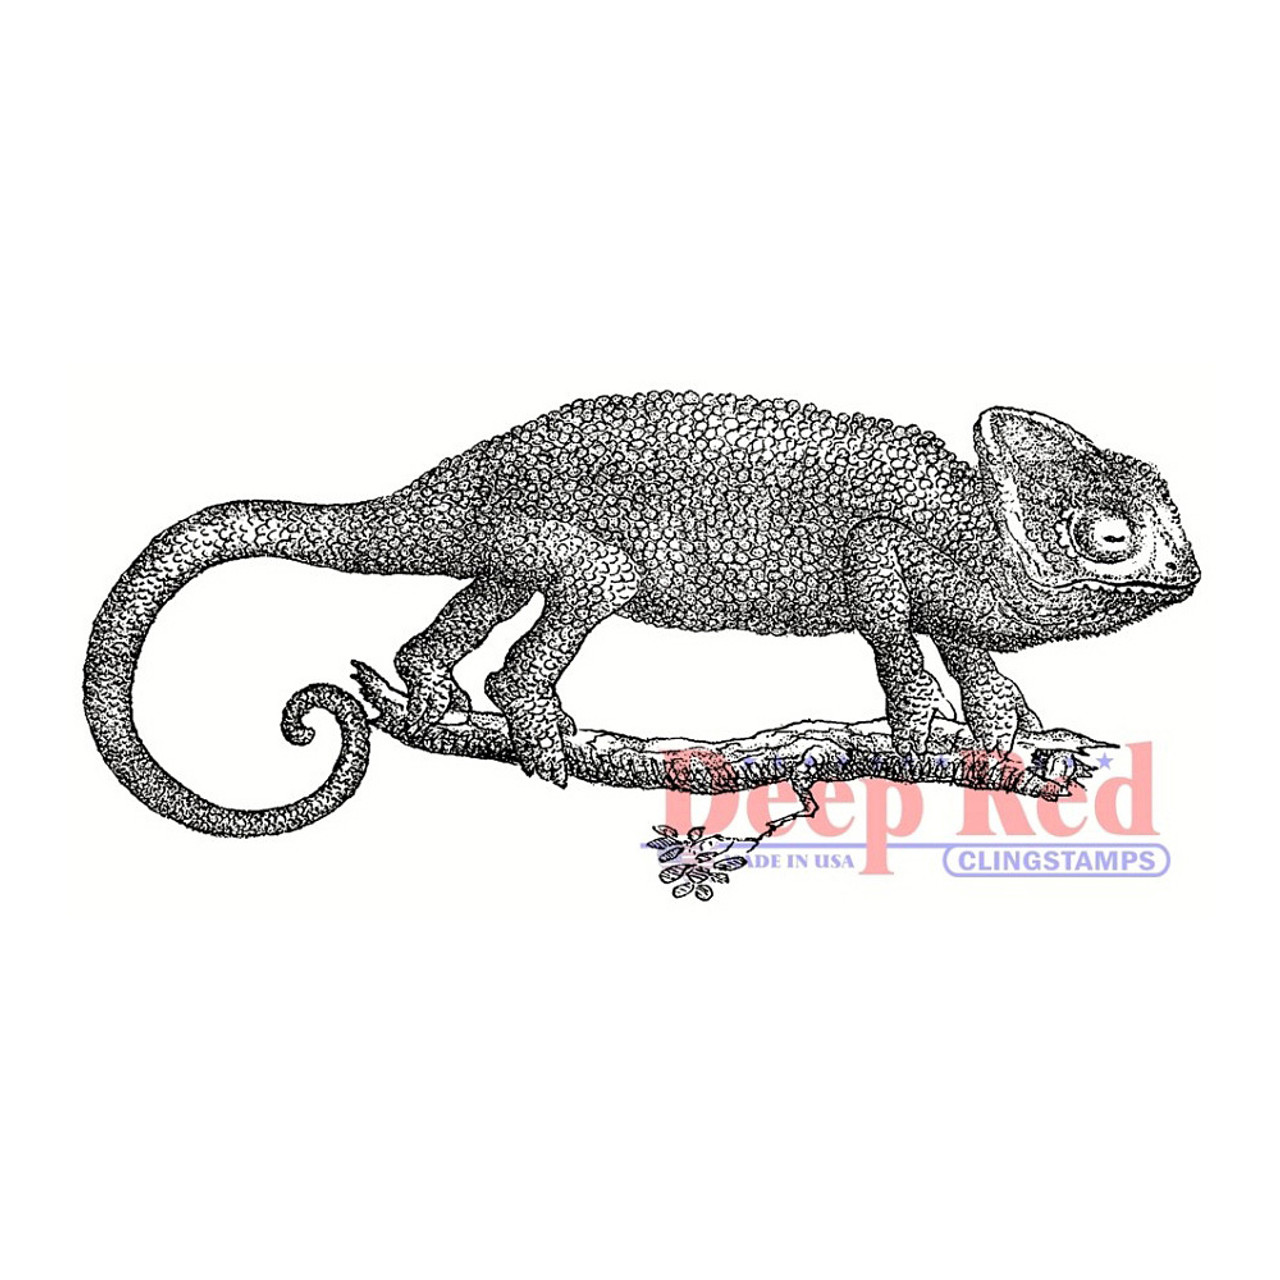 Deep Red Rubber Cling Stamp Chameleon Lizzard Rubber Stamp